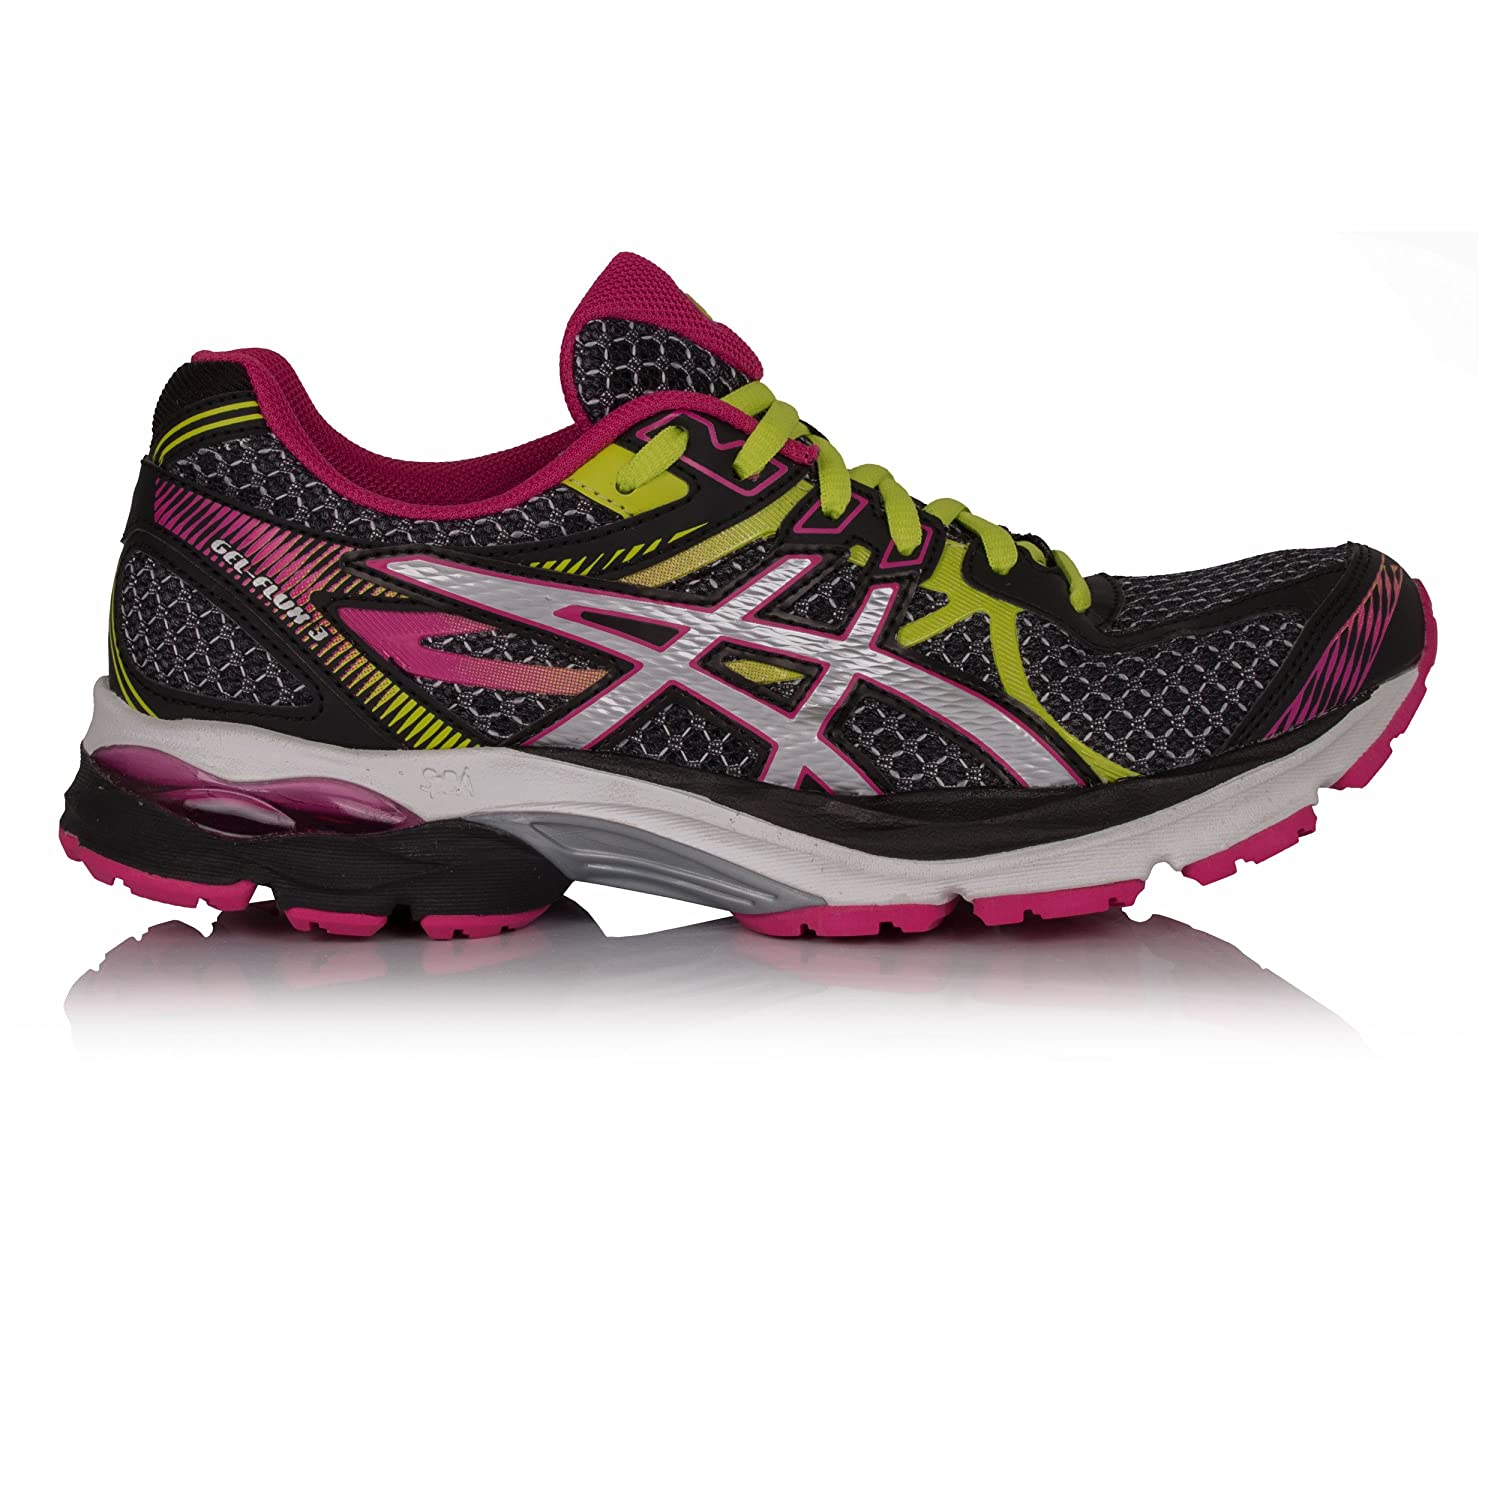 Asics Gel-Flux 3 T664n-9093, Zapatillas de Cross Unisex Adulto